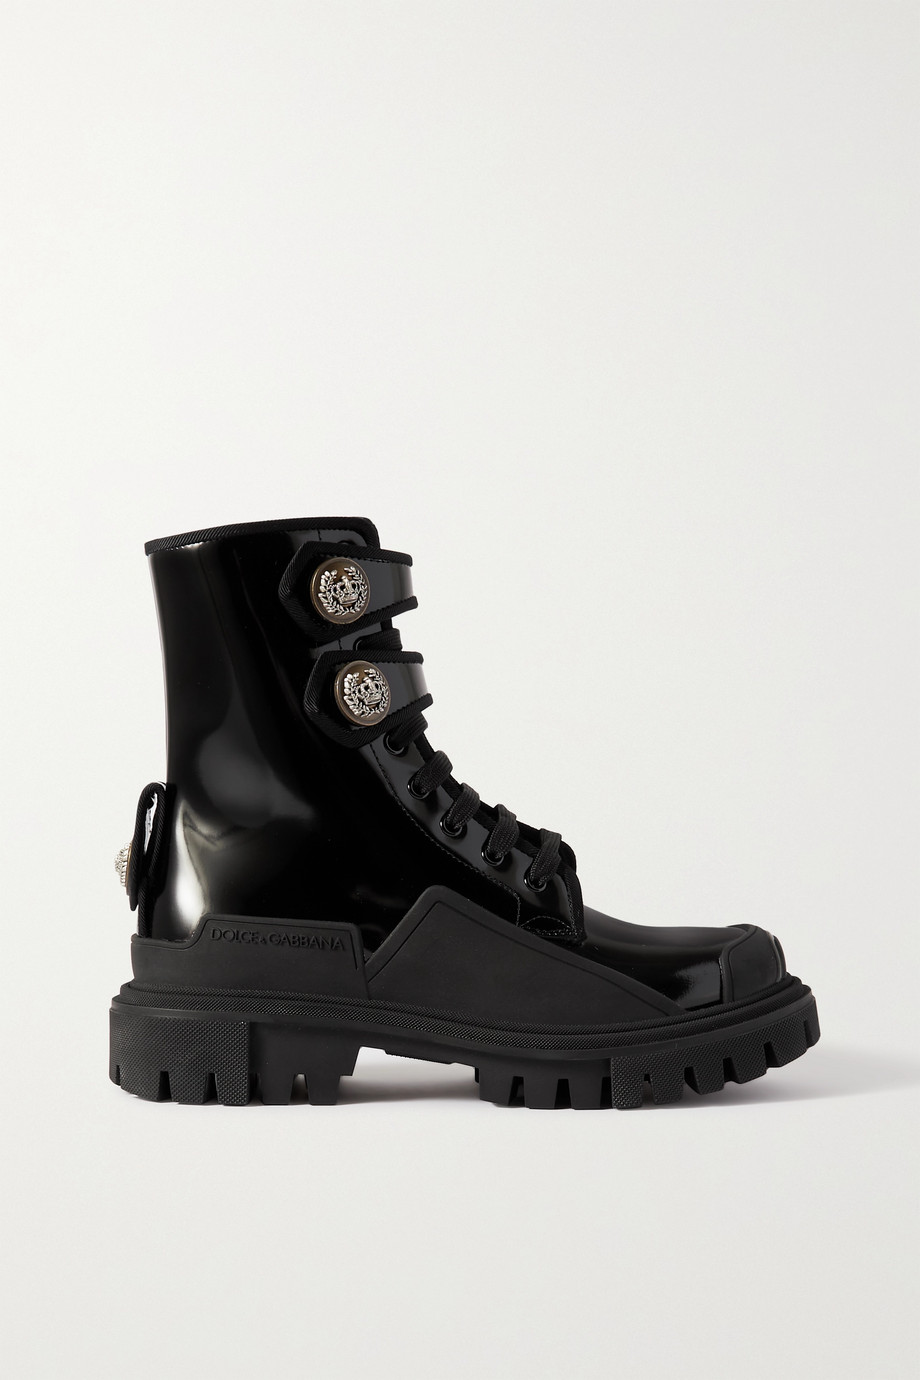 Dolce & Gabbana Biker rubber-trimmed embellished patent-leather ankle boots